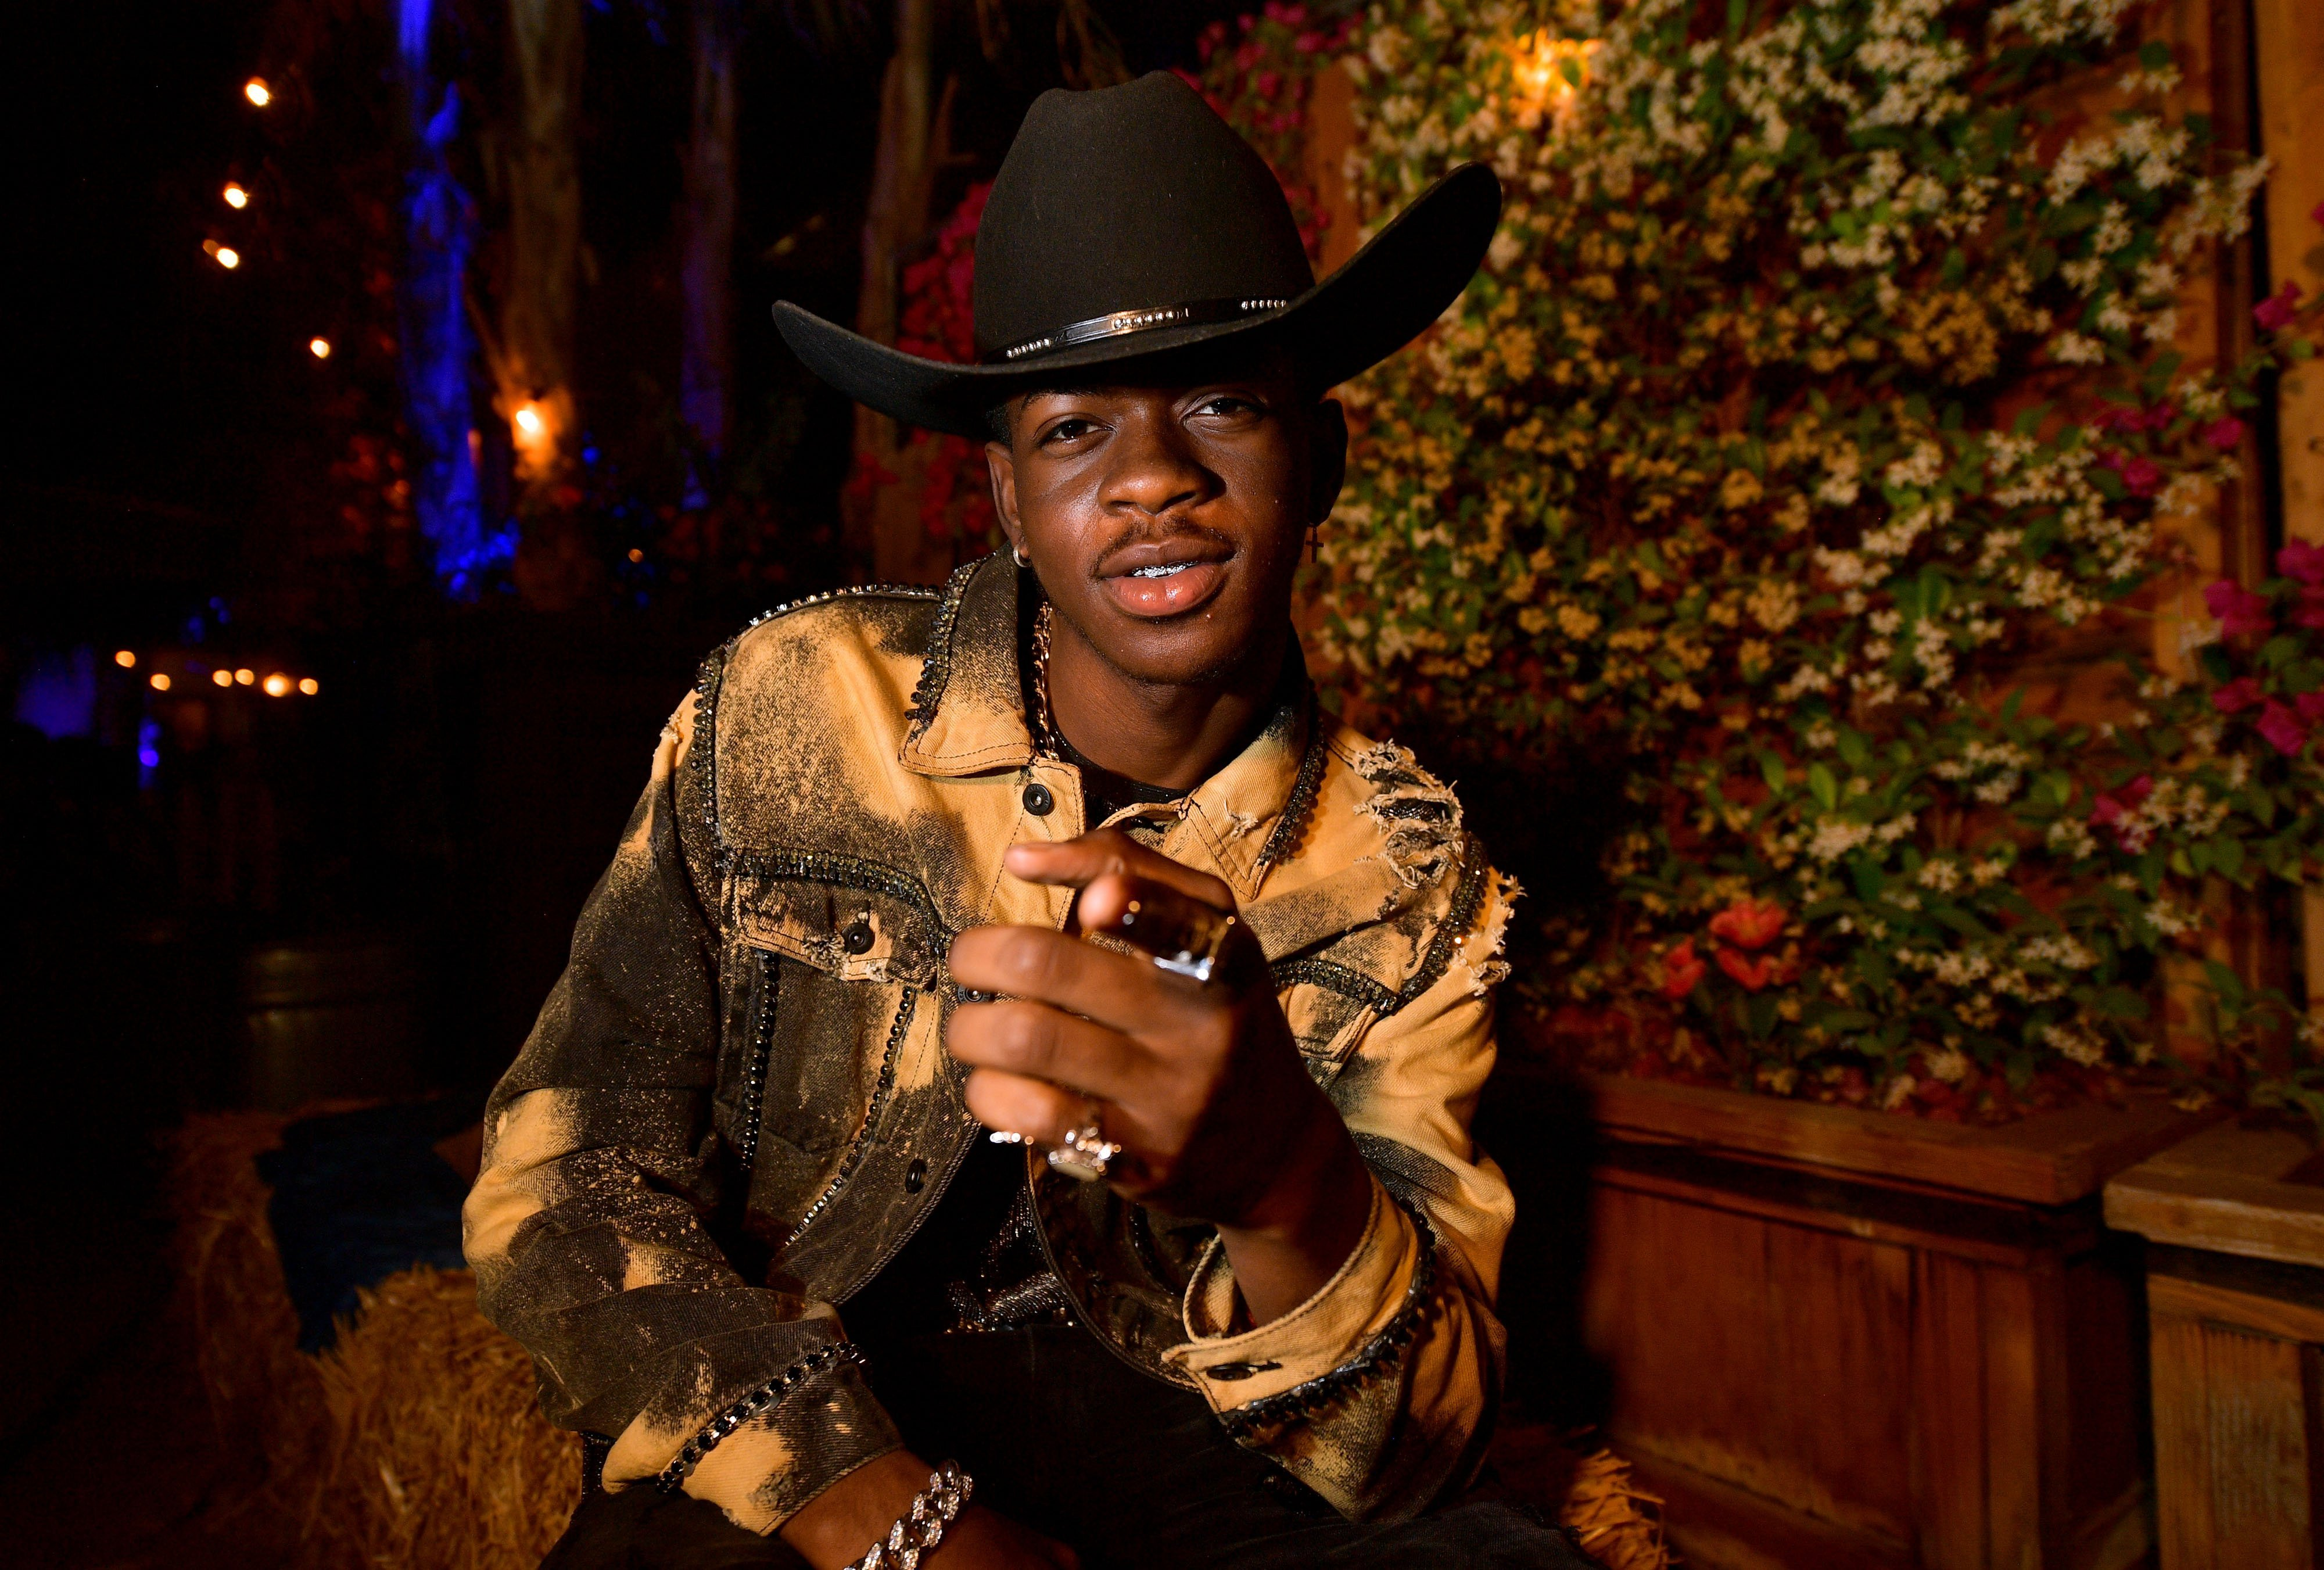 Lil Nas X poses backstage during the 2019 Stagecoach Festival at Empire Polo Field on April 28, 2019. | Photo: GettyImages